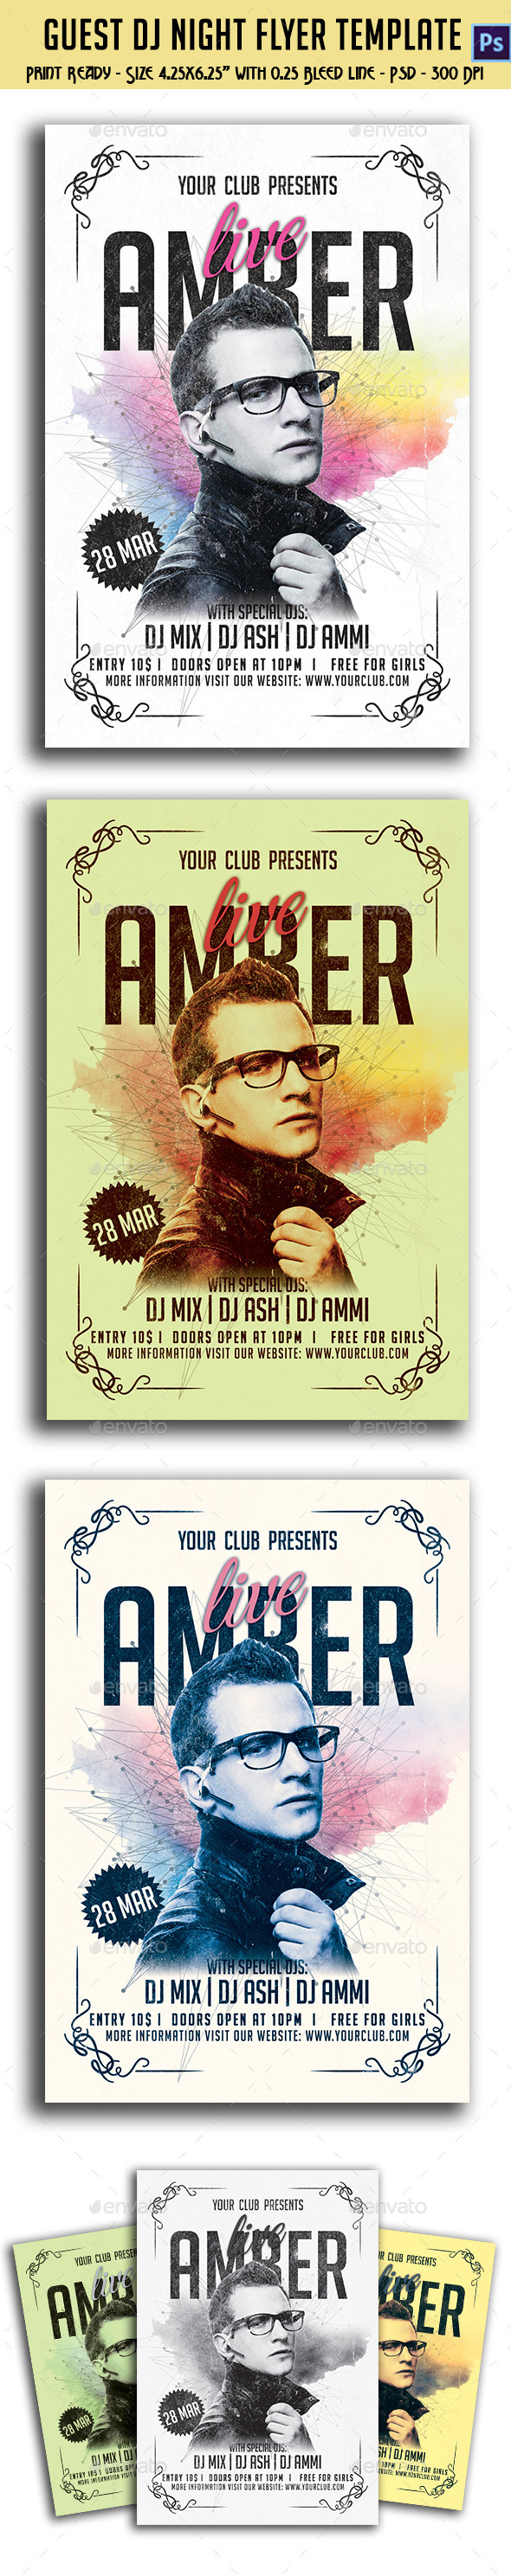 GraphicRiver Live Guest Dj Night Flyer Template 10769511